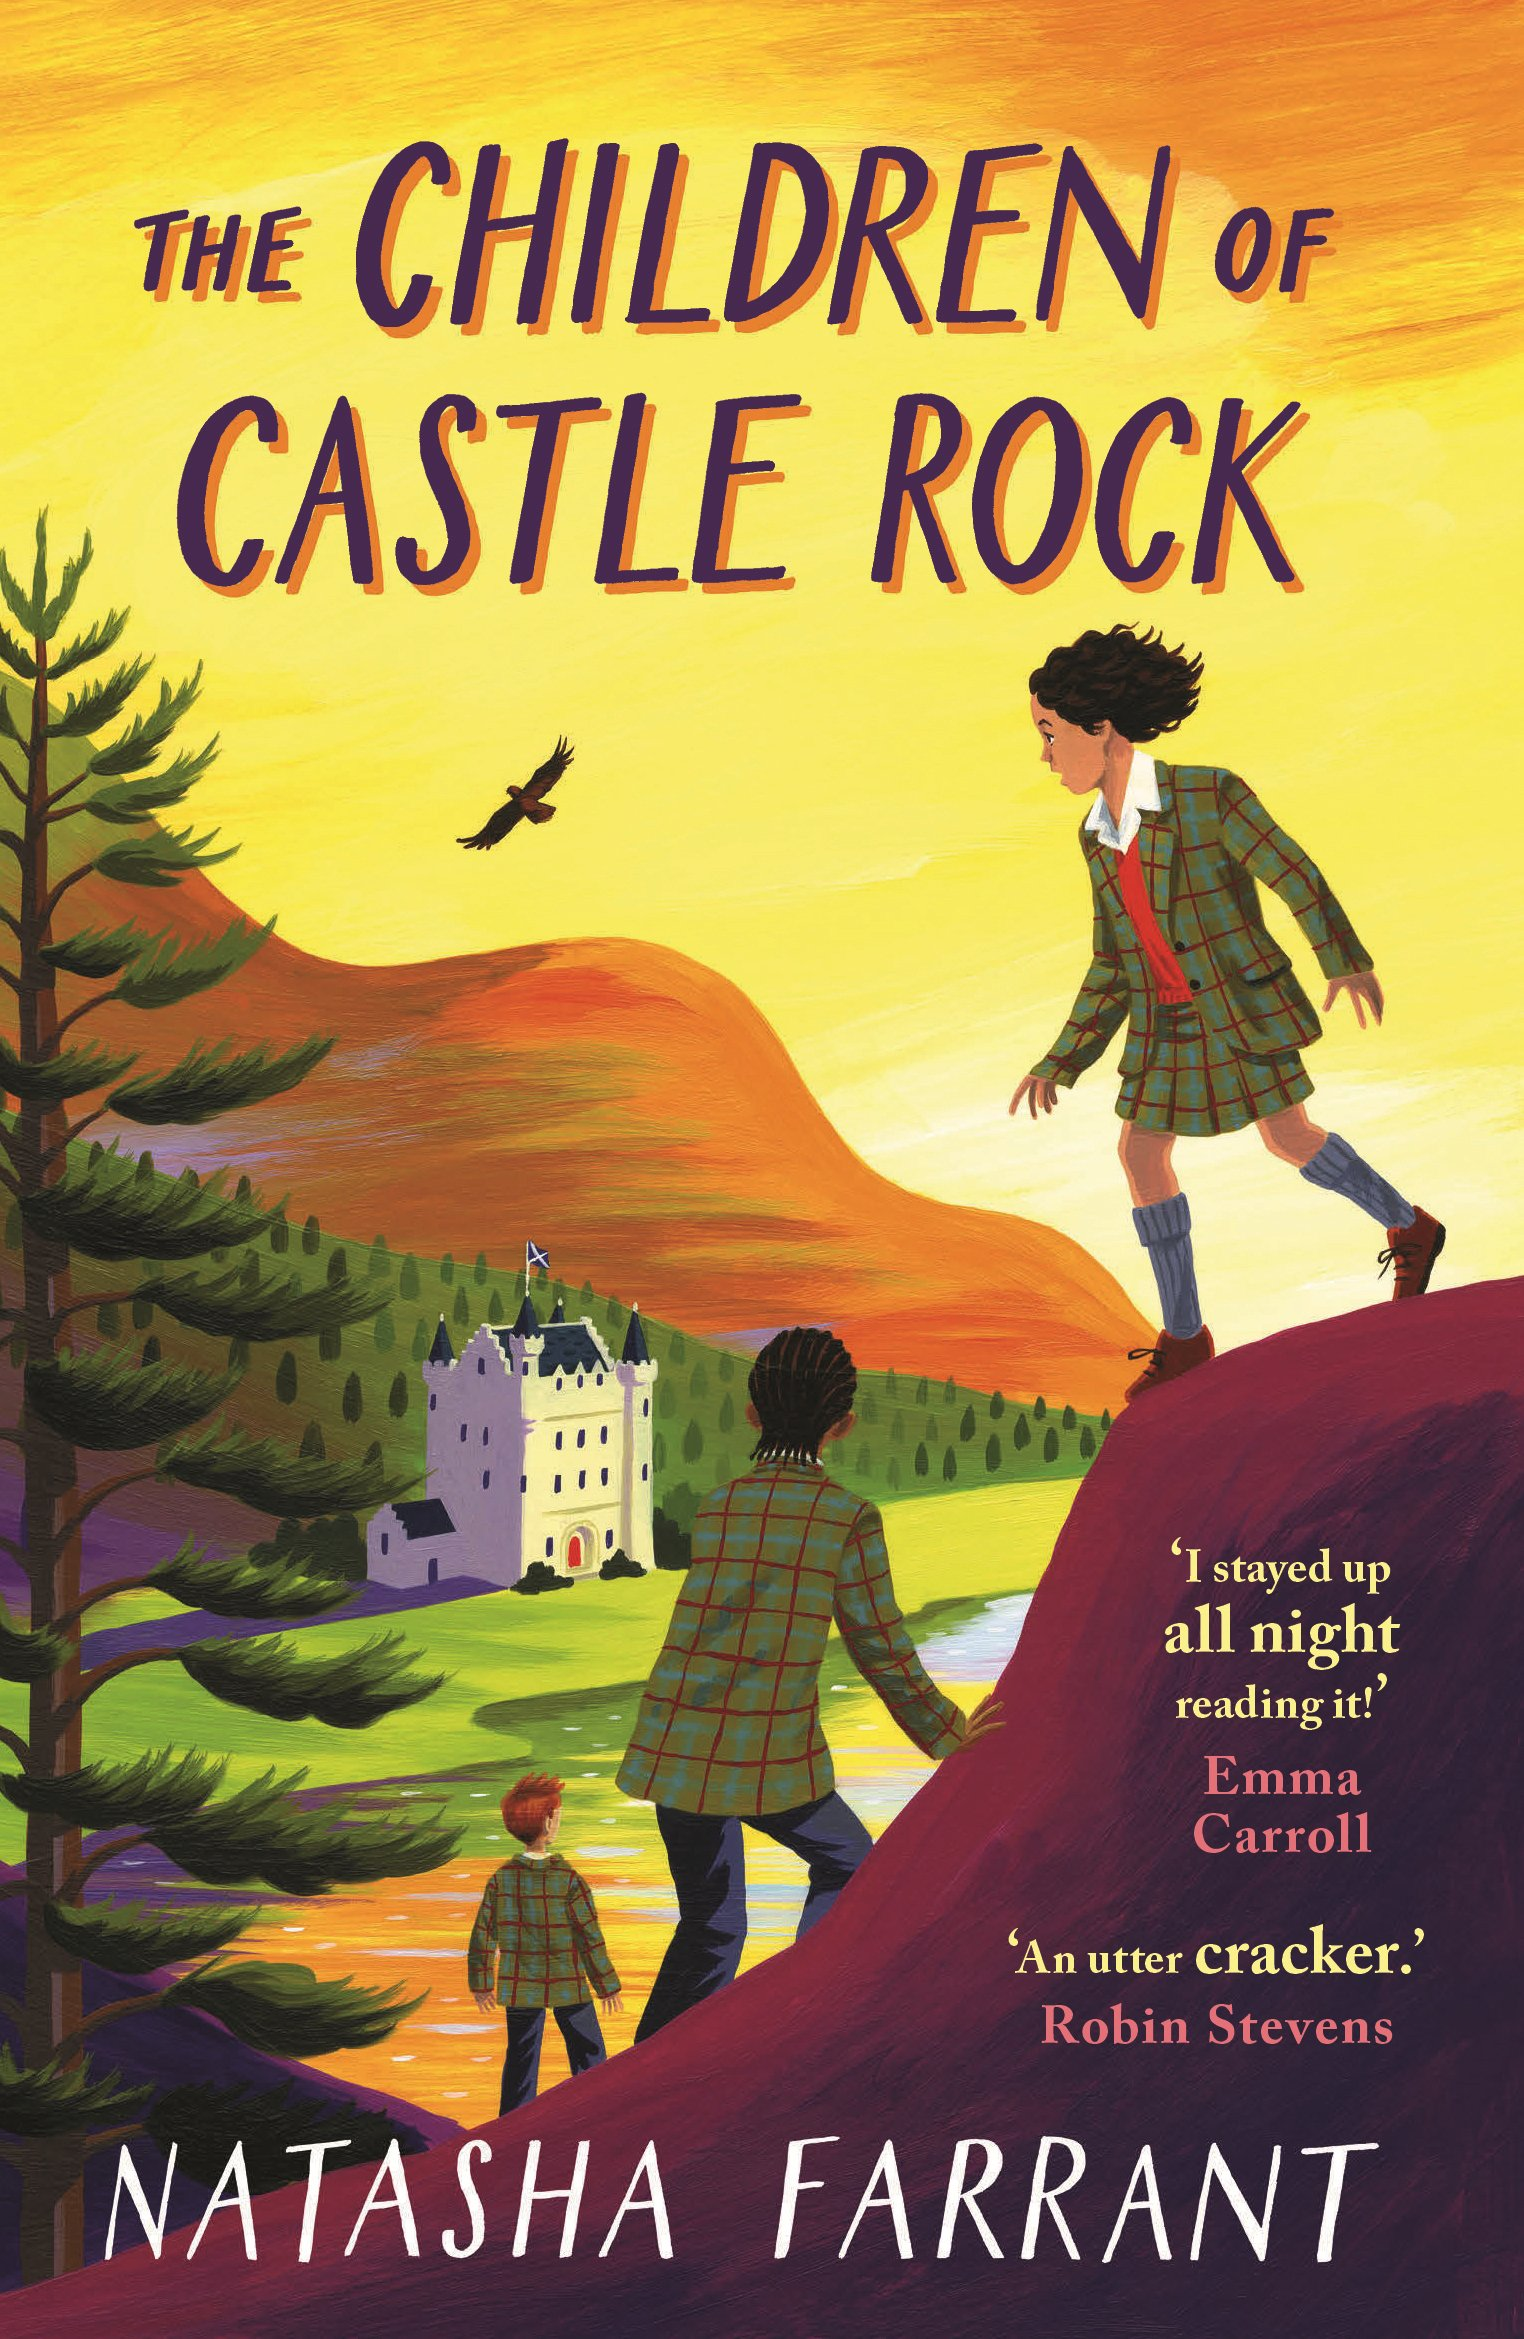 Image result for the children of castle rock